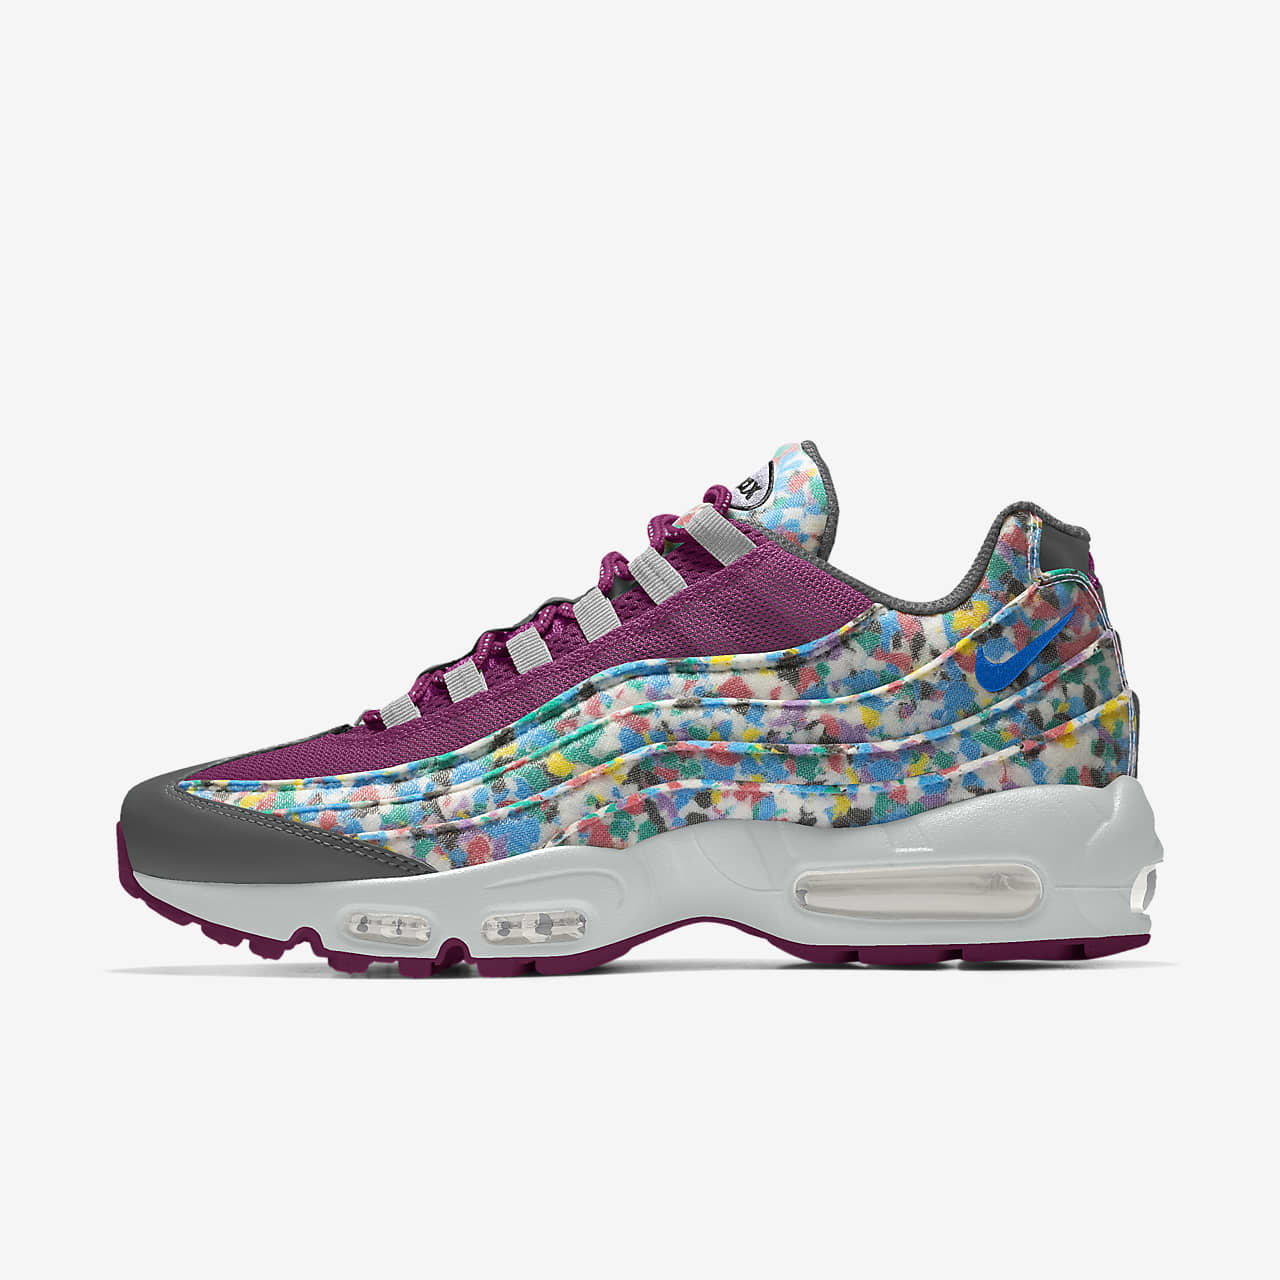 Nike Air Max 95 Unlocked By You personalisierbarer Damen Freizeitschuh